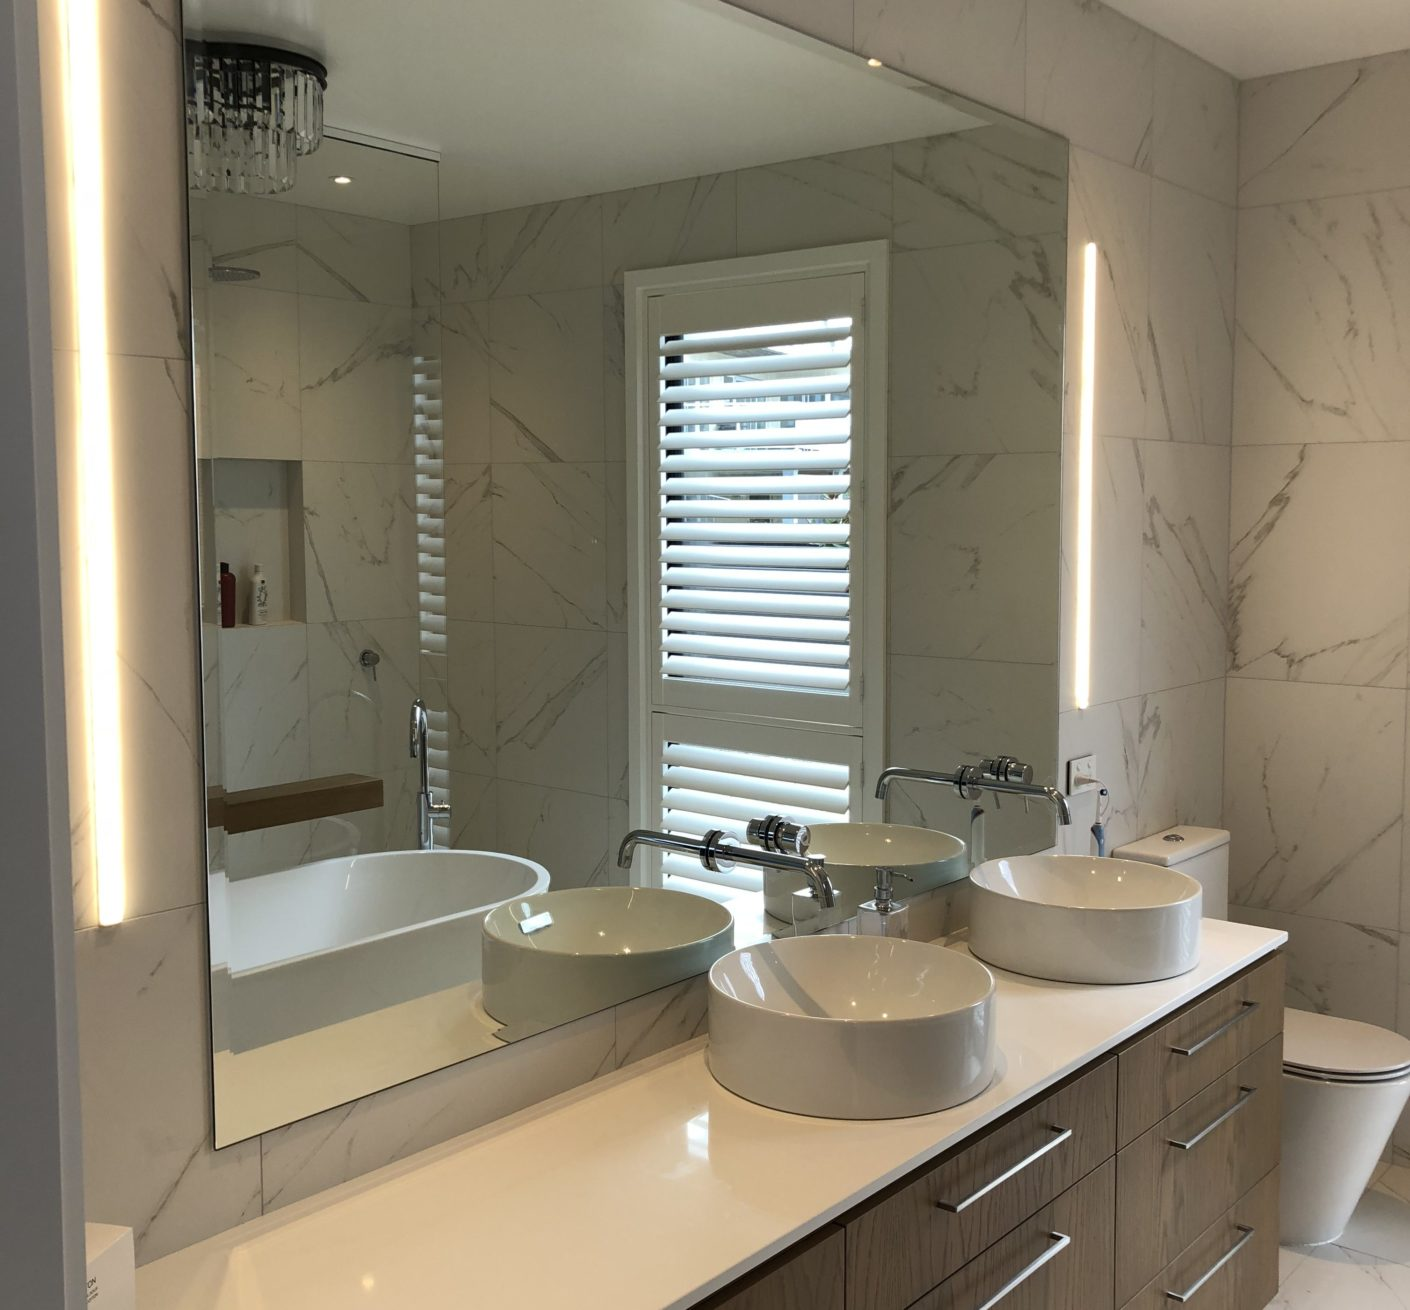 NZ Frameless Glass, South Island, Metro Glass, Christchurch Glass, Prestige Glass, Canterbury Glass, Shower Glass, Showers, Balustrades, Frameless Glass, Stake Glass, Commercial Glass, Christchurch Glass